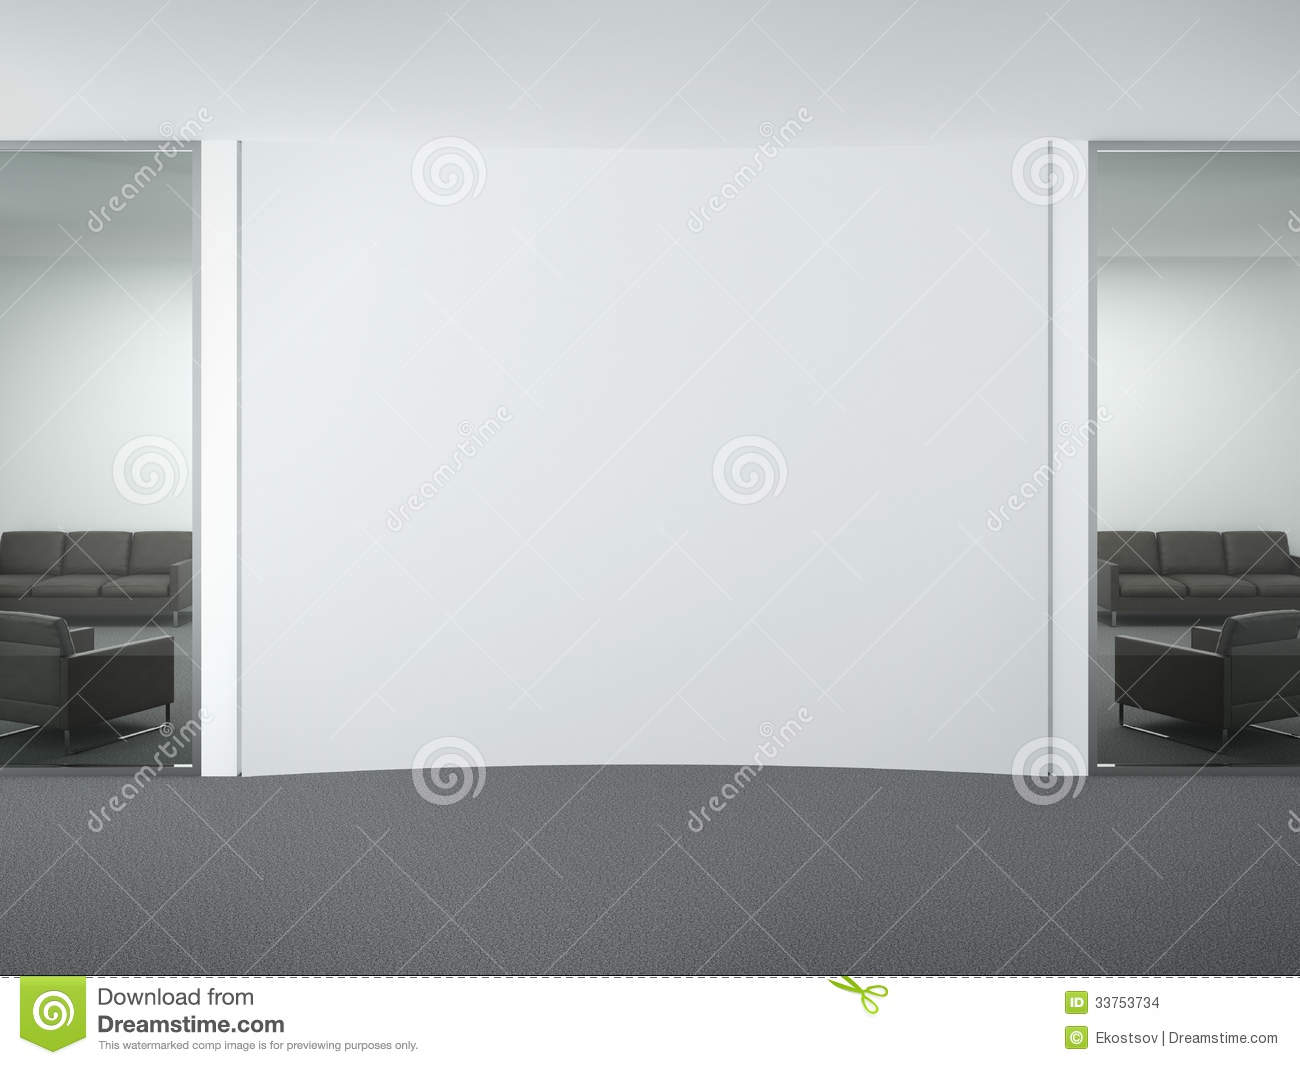 blank wall in office stock images - image: 33753734